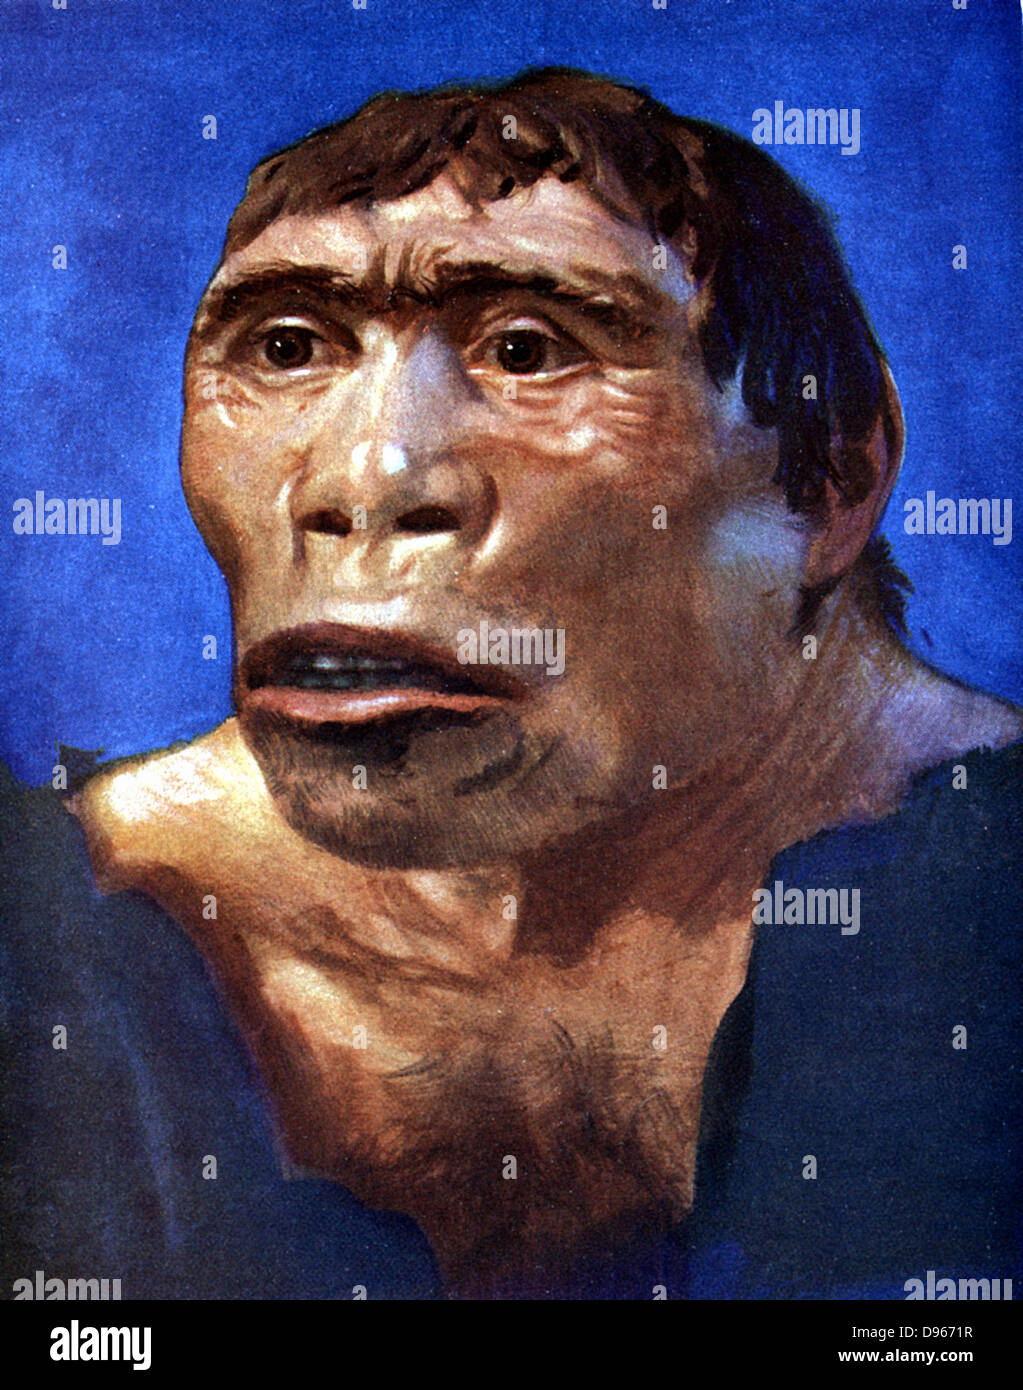 Reconstruction of Java Man (Pithecanthropus erectus) based on skull cap, thigh bone and 2 back teeth discovered - Stock Image